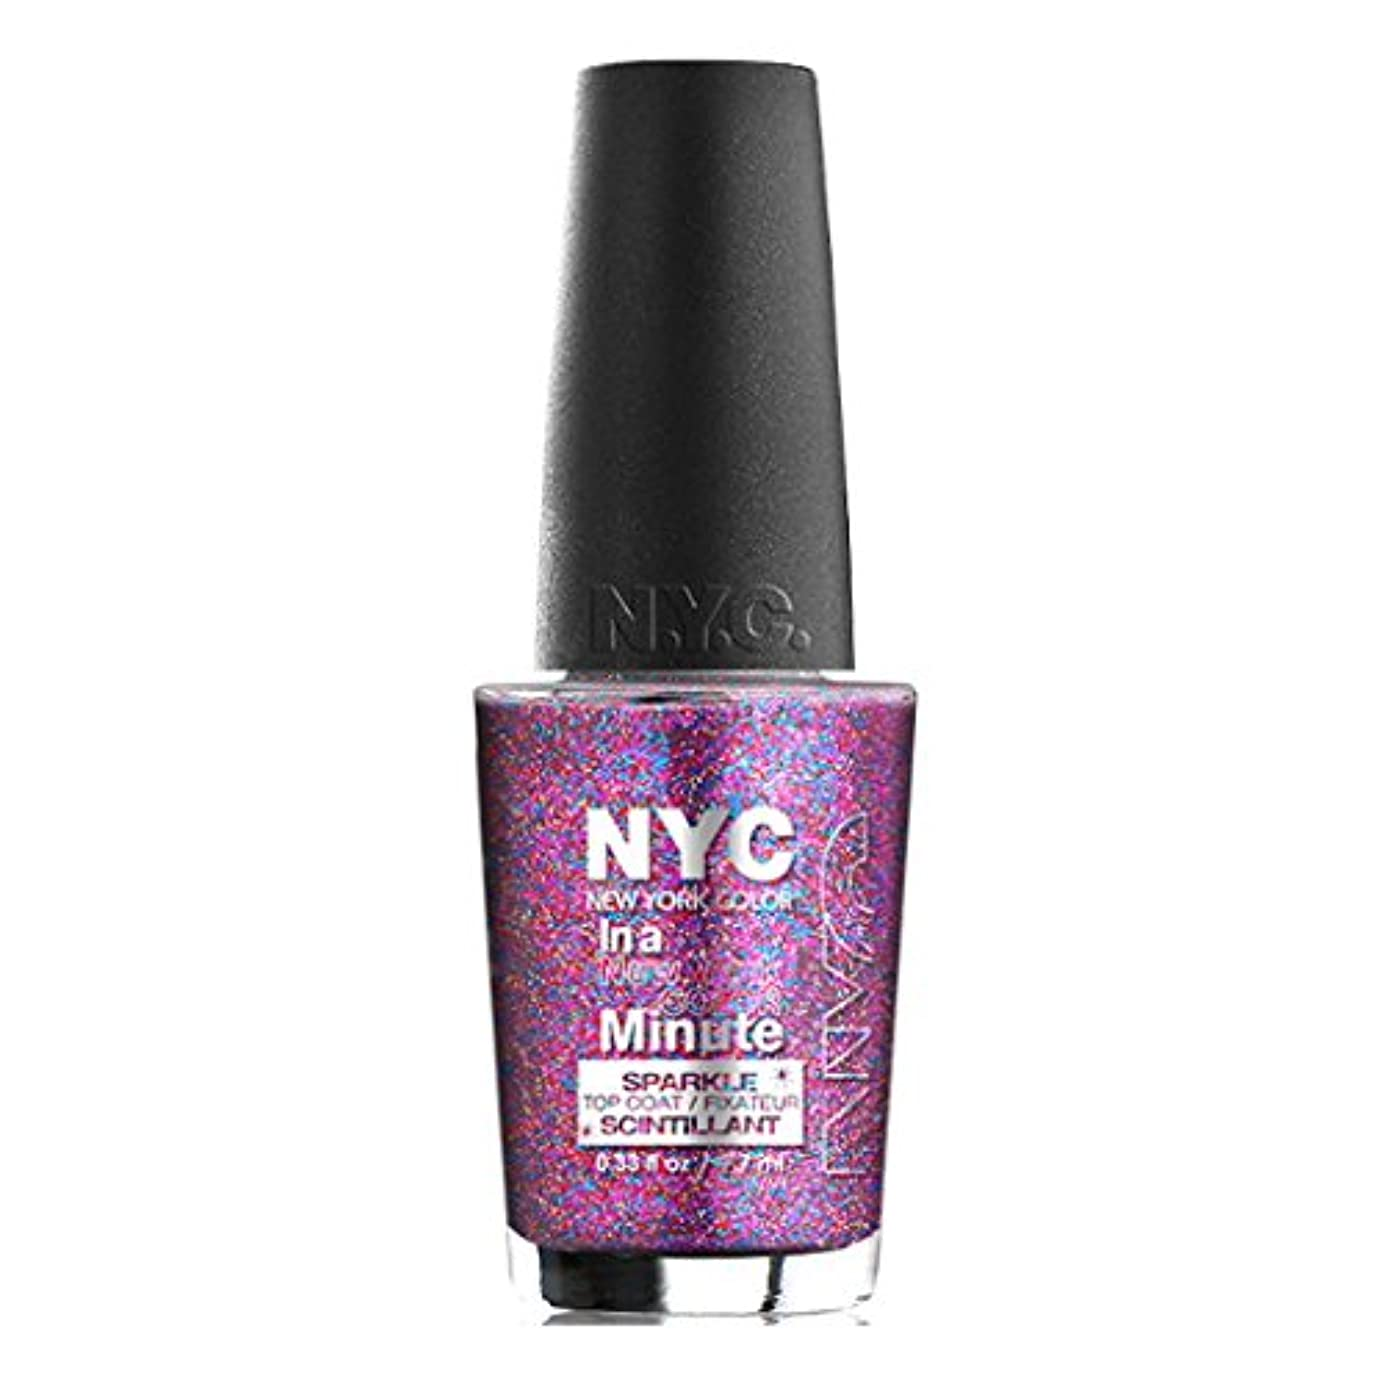 指令パスポートリールNYC In A New York Color Minute Sparkle Top Coat Big City Dazzle (並行輸入品)